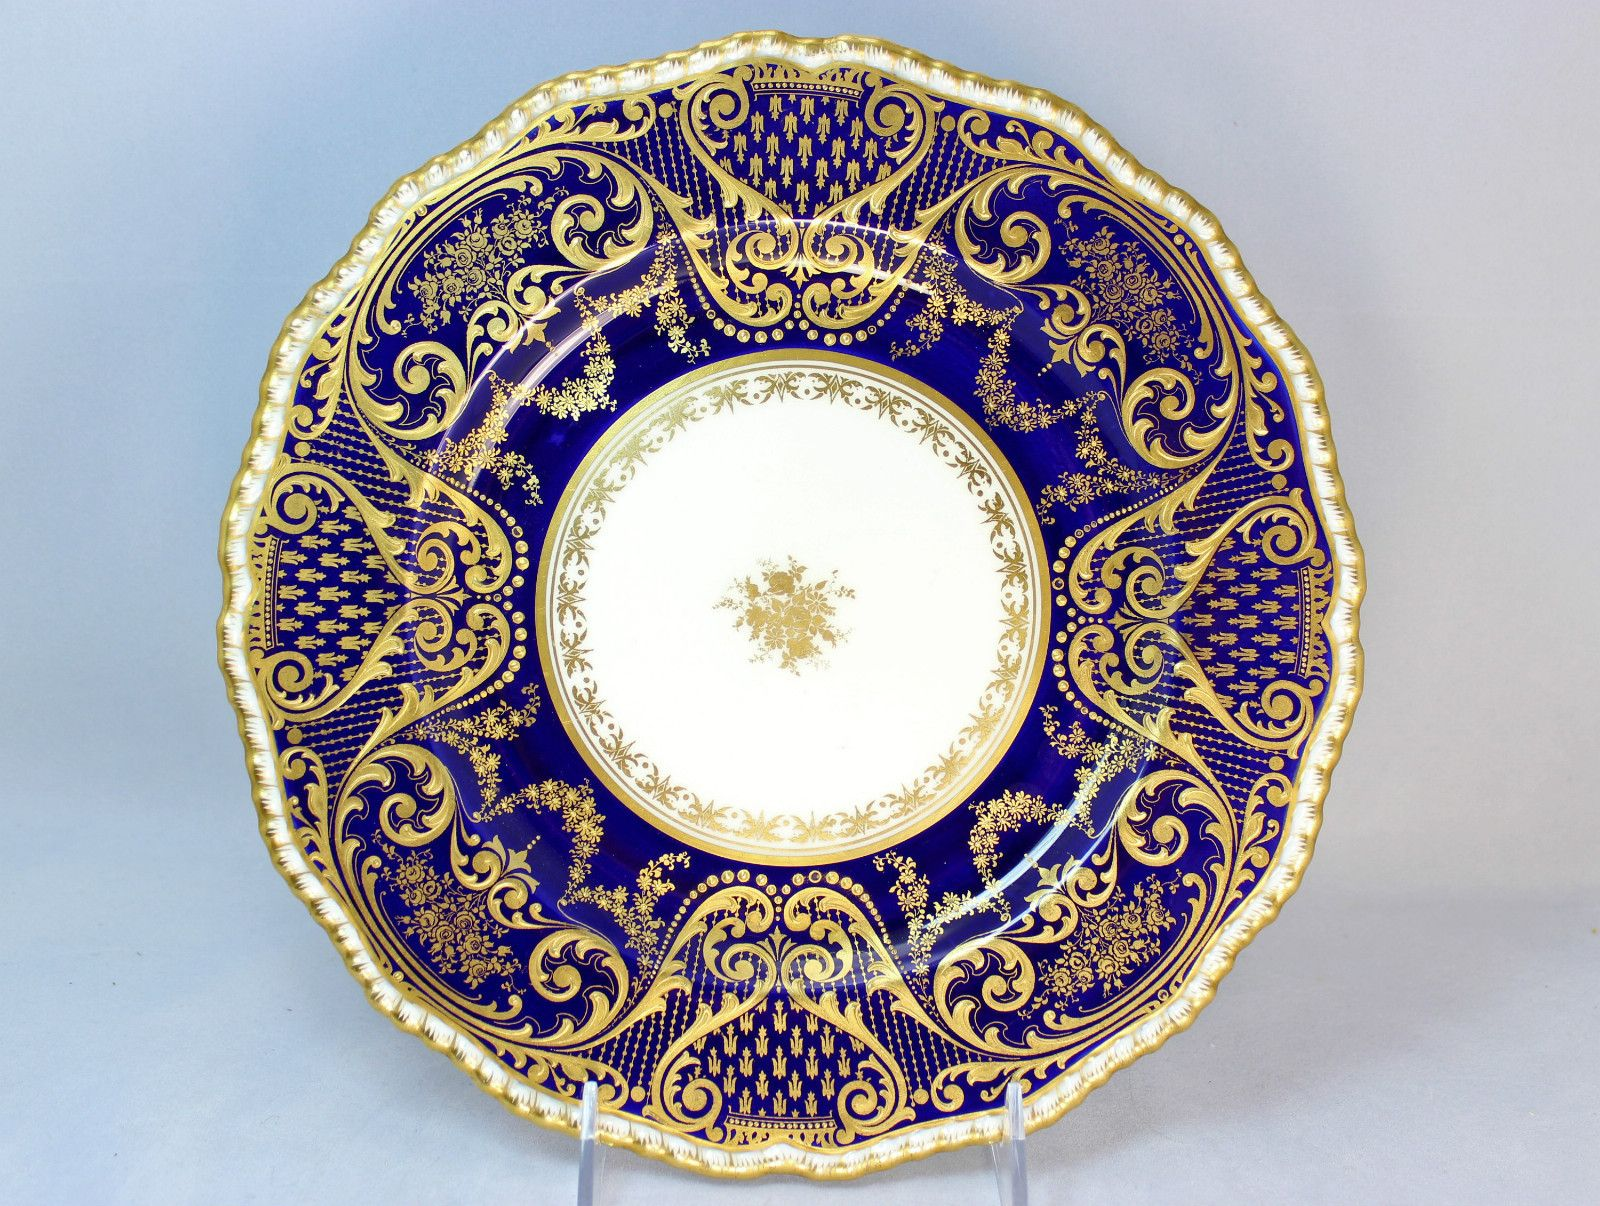 ANTIQUE ROYAL DOULTON CHINA SET 11 DINNER PLATES COBALT RAISED GOLD ENCRUSTED  sc 1 st  Pinterest : blue china dinnerware sets - pezcame.com